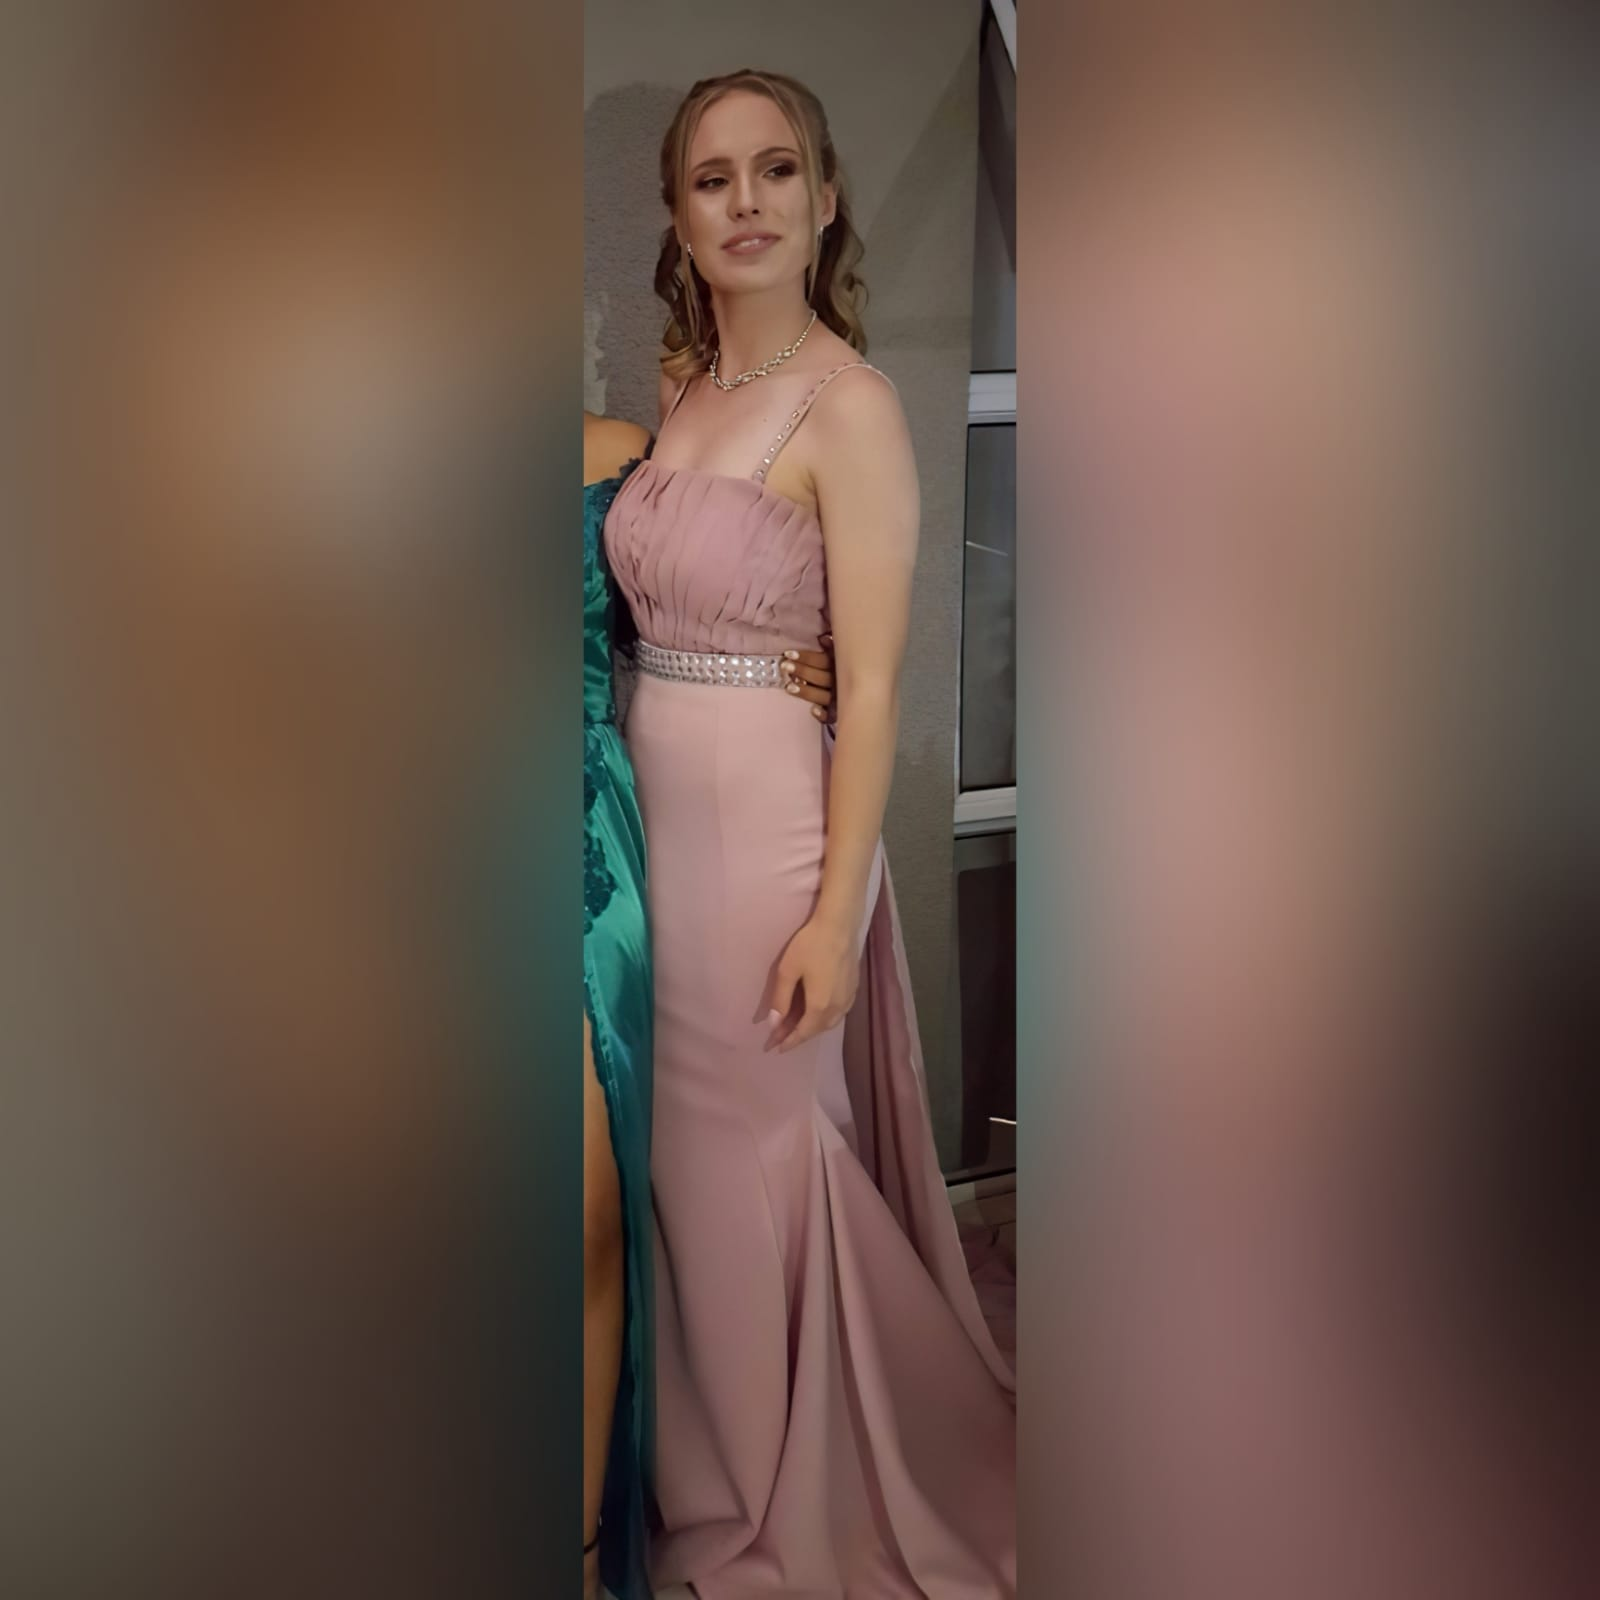 Dusty pink soft mermaid prom dress with a pleated bodice 1 dusty pink soft mermaid prom dress with a pleated bodice, with a train. Extra detachable chiffon train with a beaded belt and removable shoulder straps